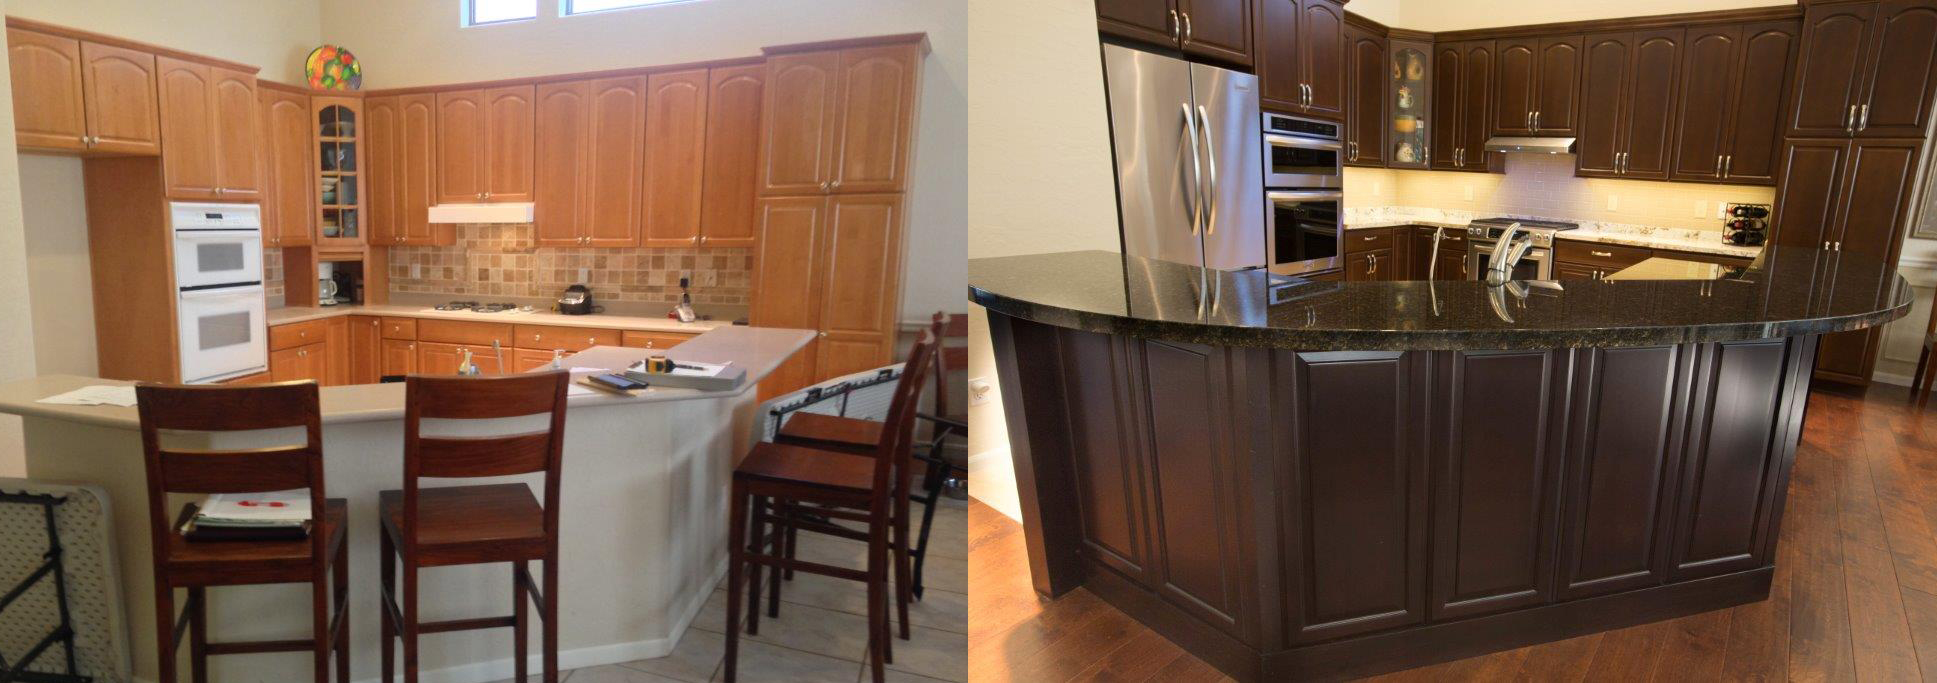 cabinet refinishing phoenix az tempe arizona kitchens bathrooms rh rayoflightcompanies com Refinishing Kitchen Cabinets Refinishing Kitchen Cabinets